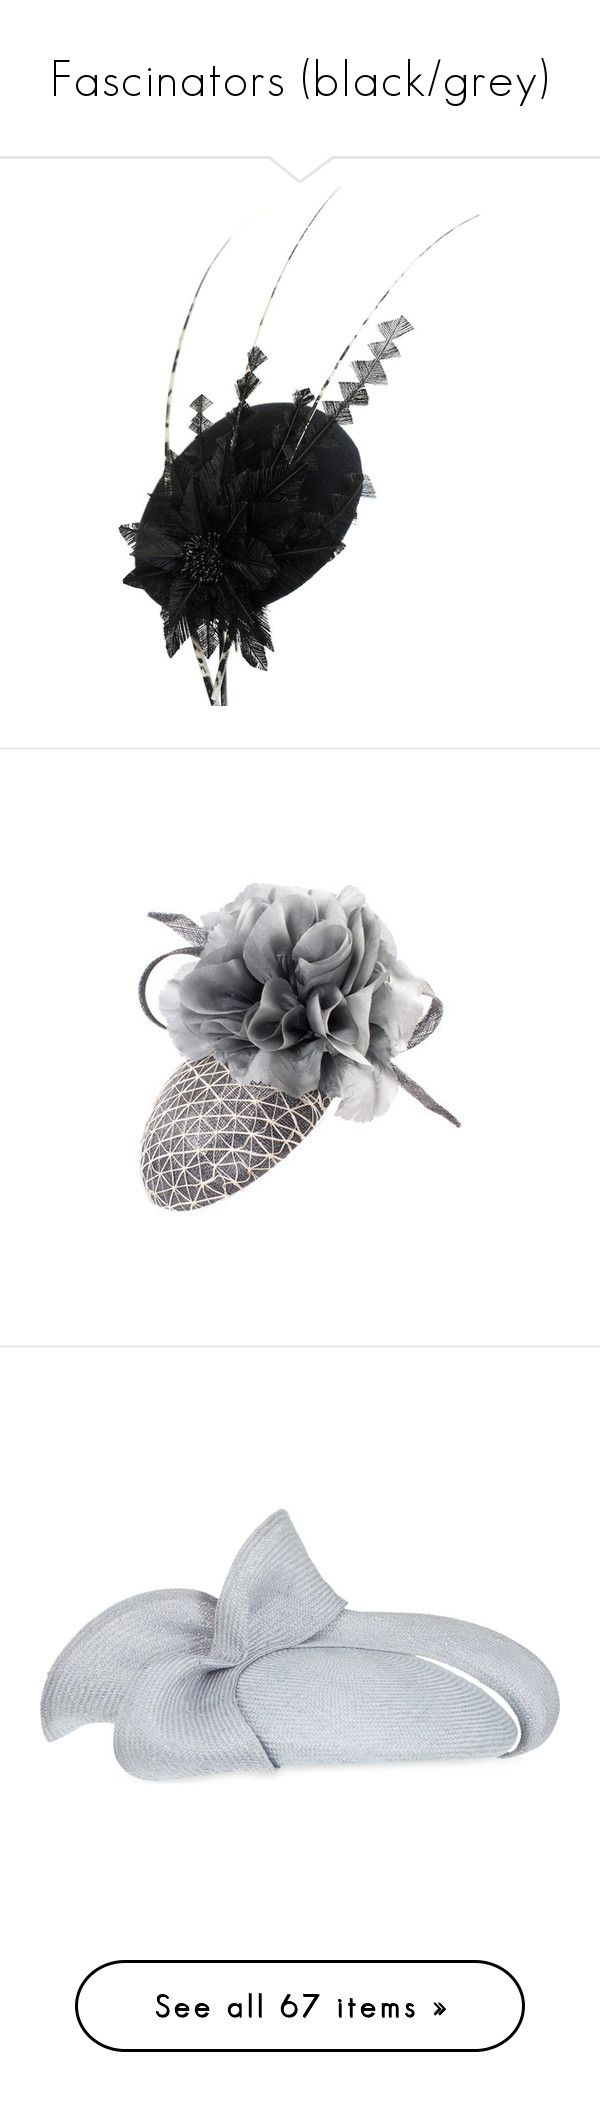 """Fascinators (black/grey)"" by averymessygirl ❤ liked on Polyvore featuring accessories, hats, couture hats, fascinators, gina foster, holiday hats, grey fascinator, gray fascinator, waffle hat and grey fascinator hat"